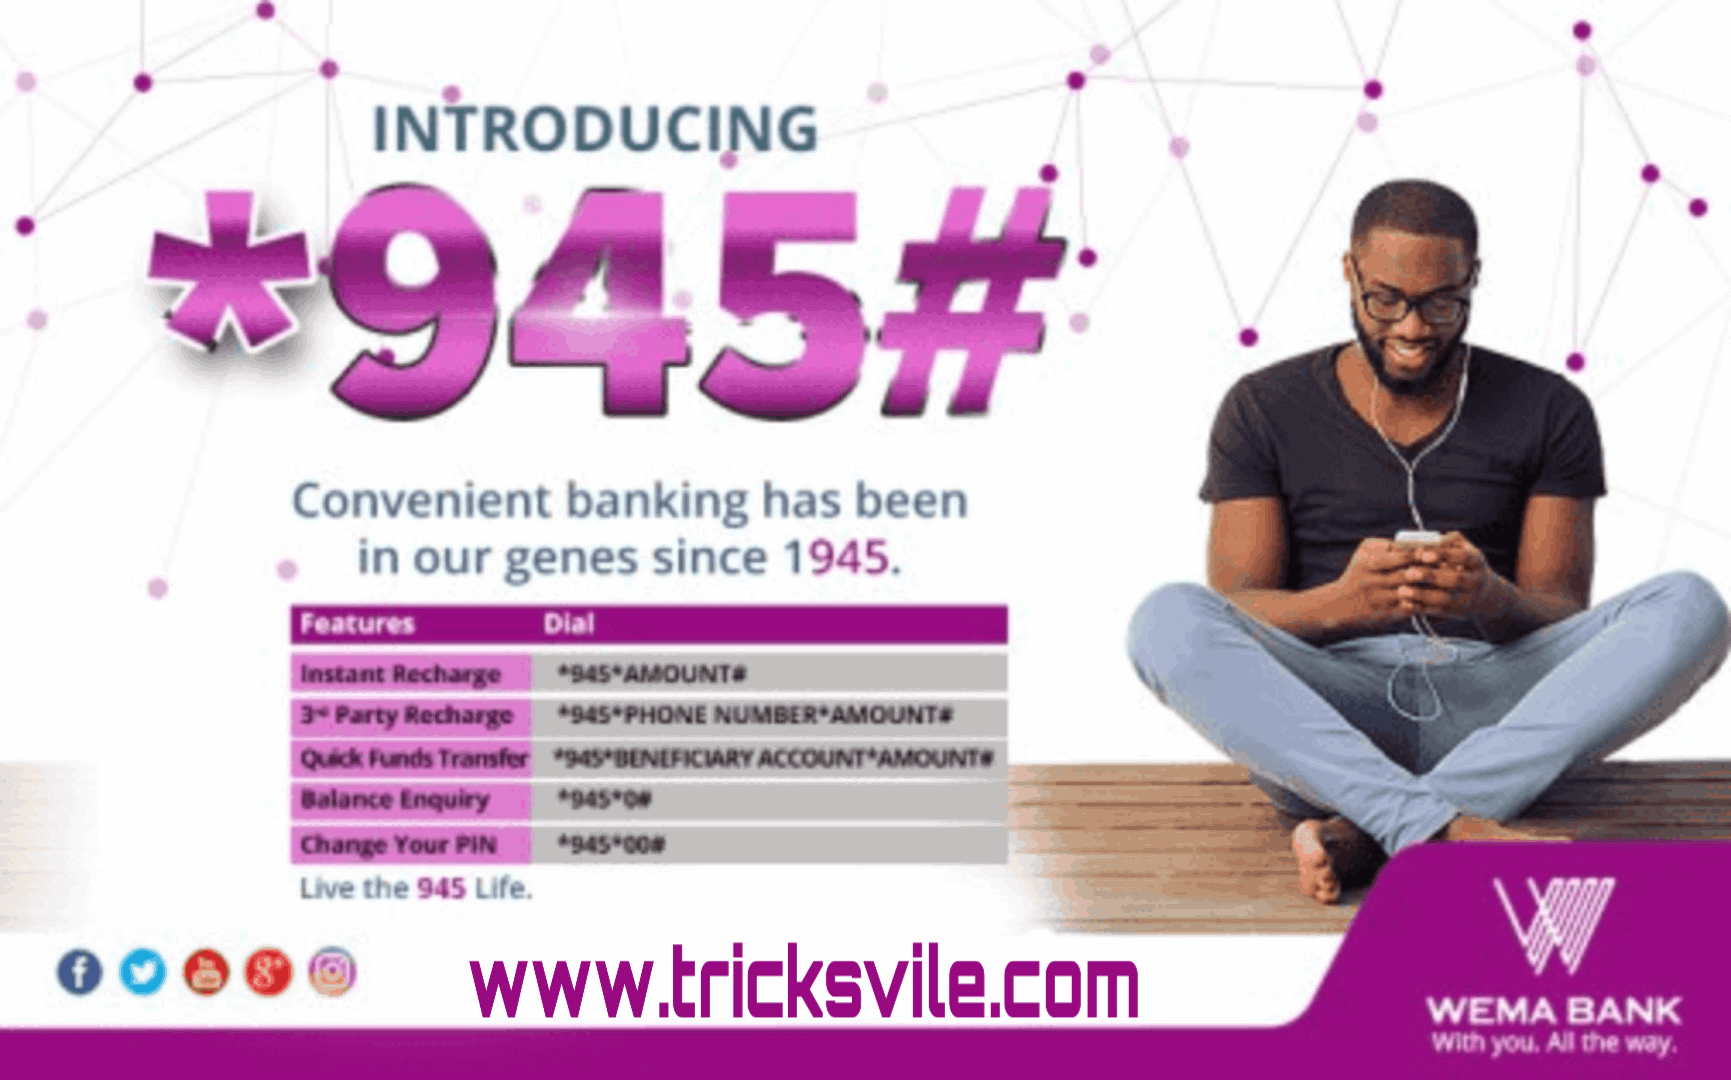 How To Send Money With Wema Bank Transfer Code On Phone 2019